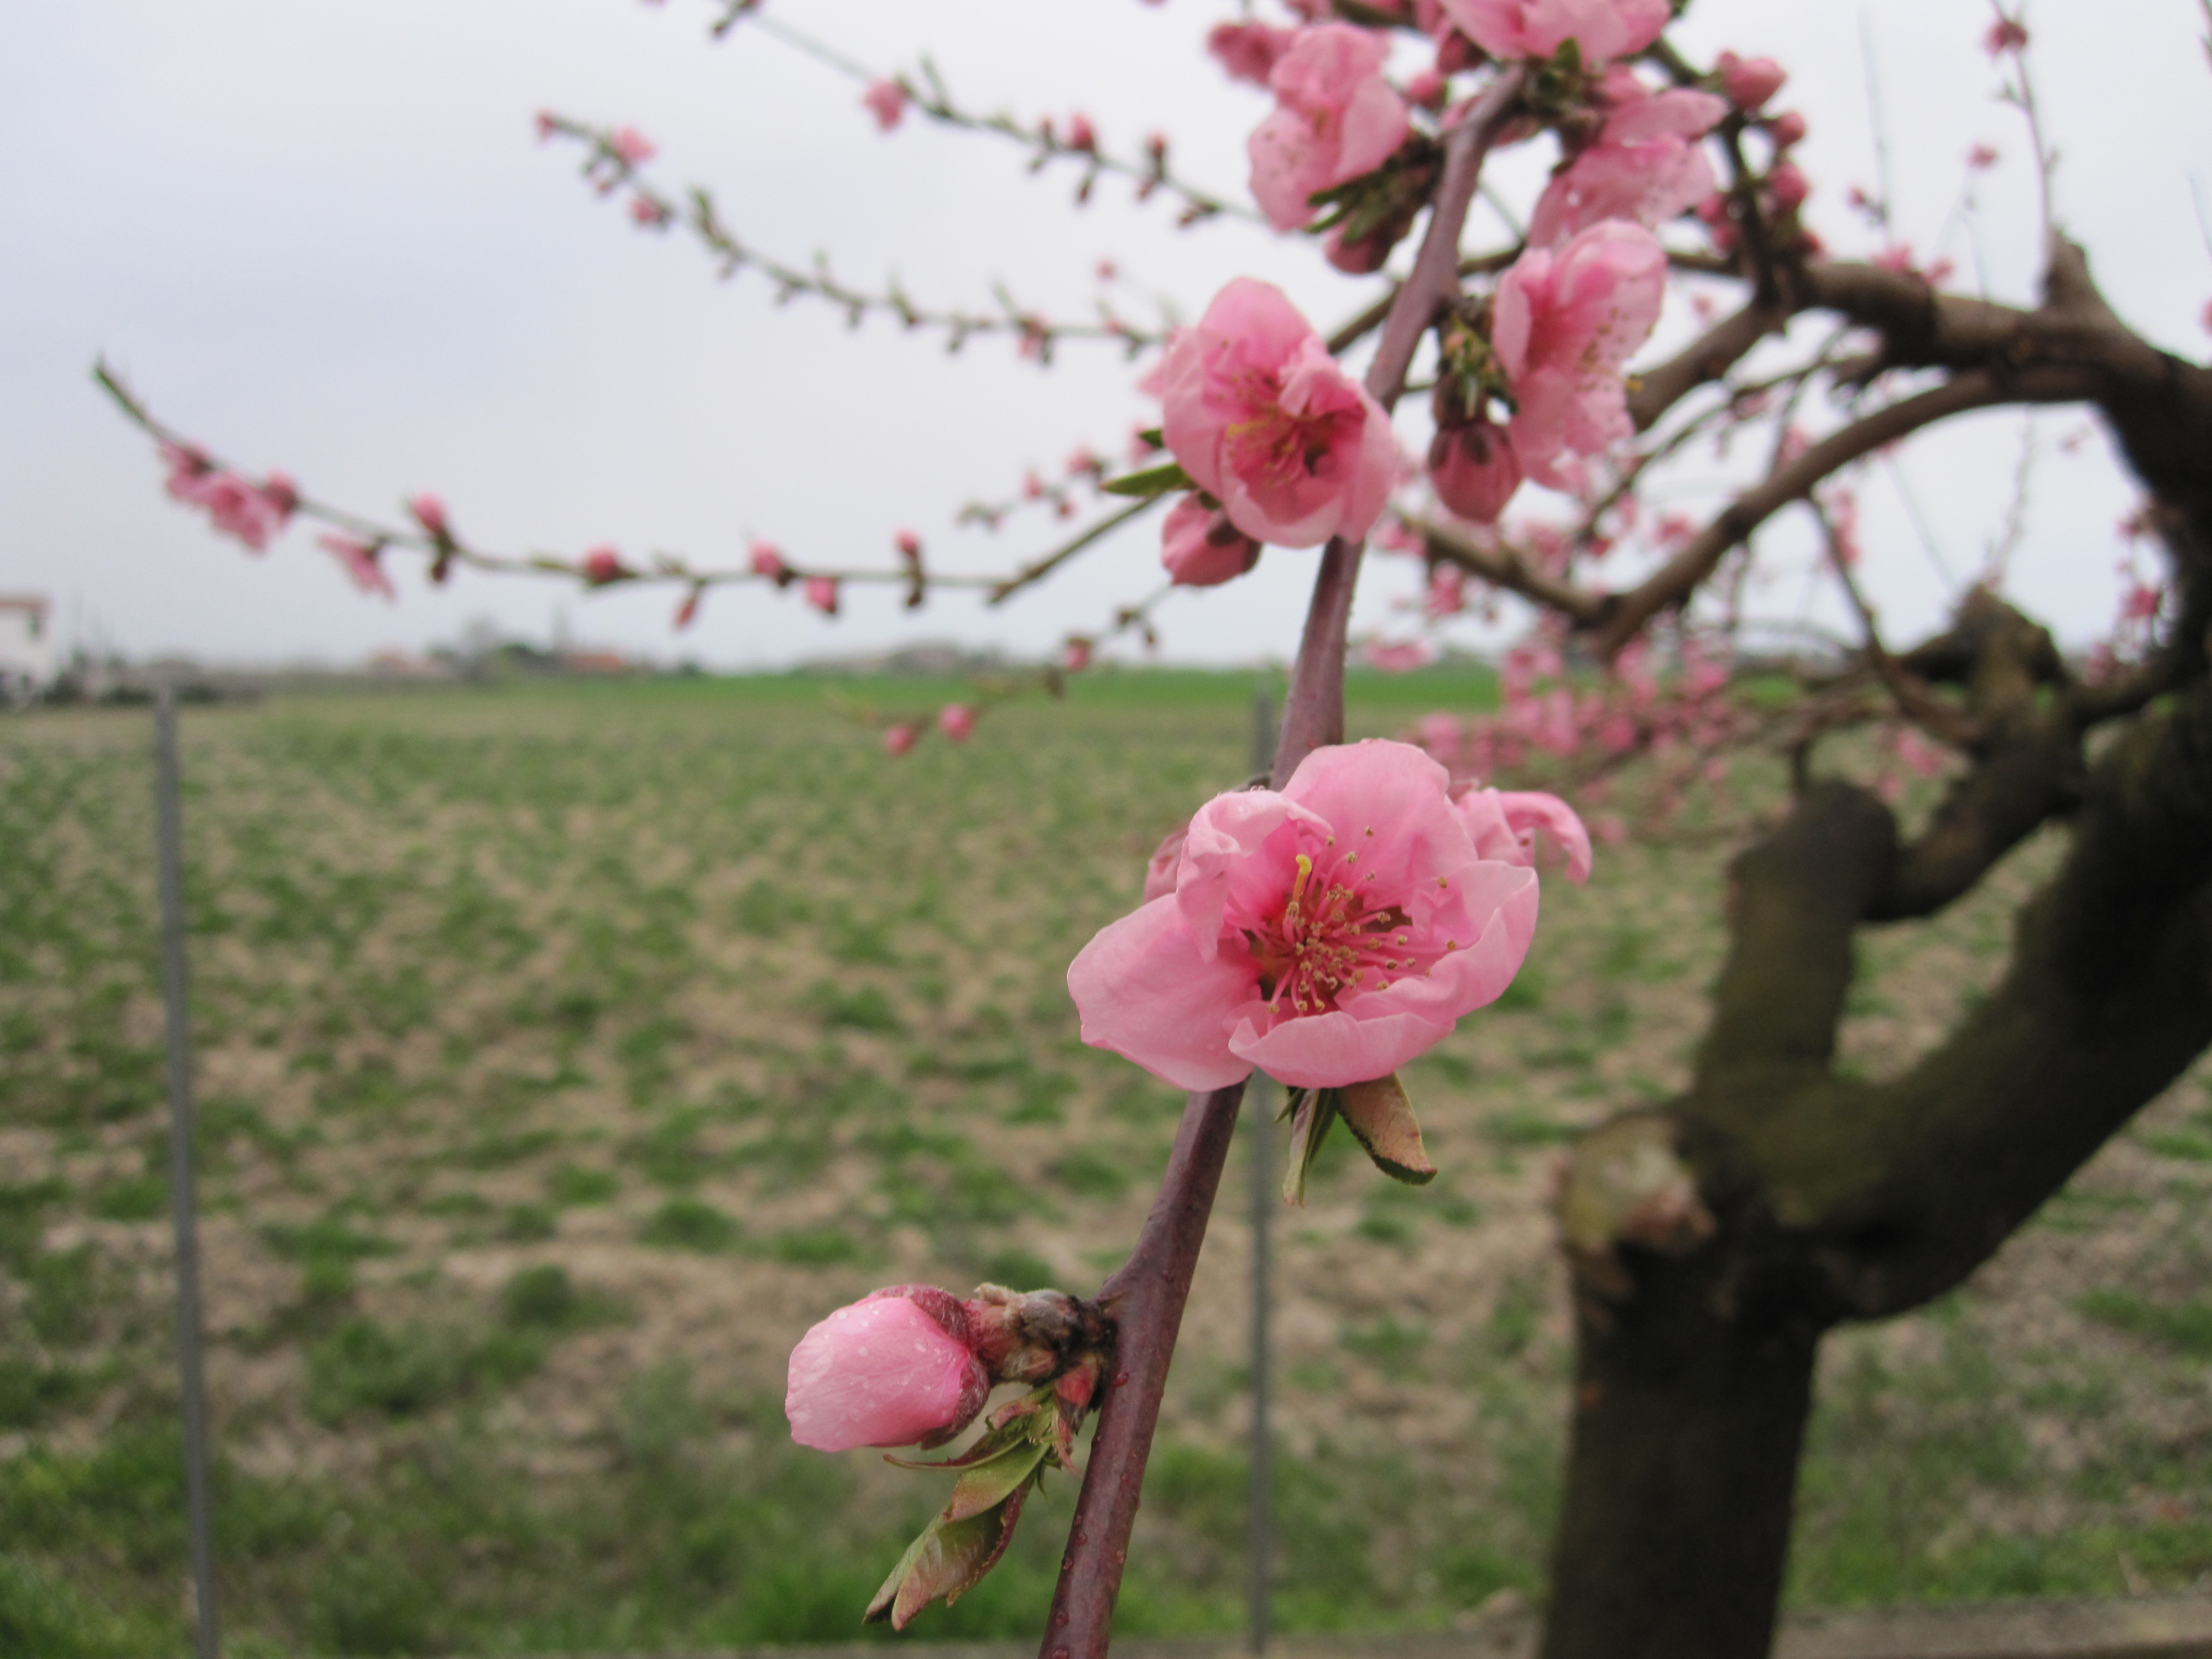 File 13 italy peaches in bloom spring flowers of tree fruit file 13 italy peaches in bloom spring flowers of tree fruit mightylinksfo Images